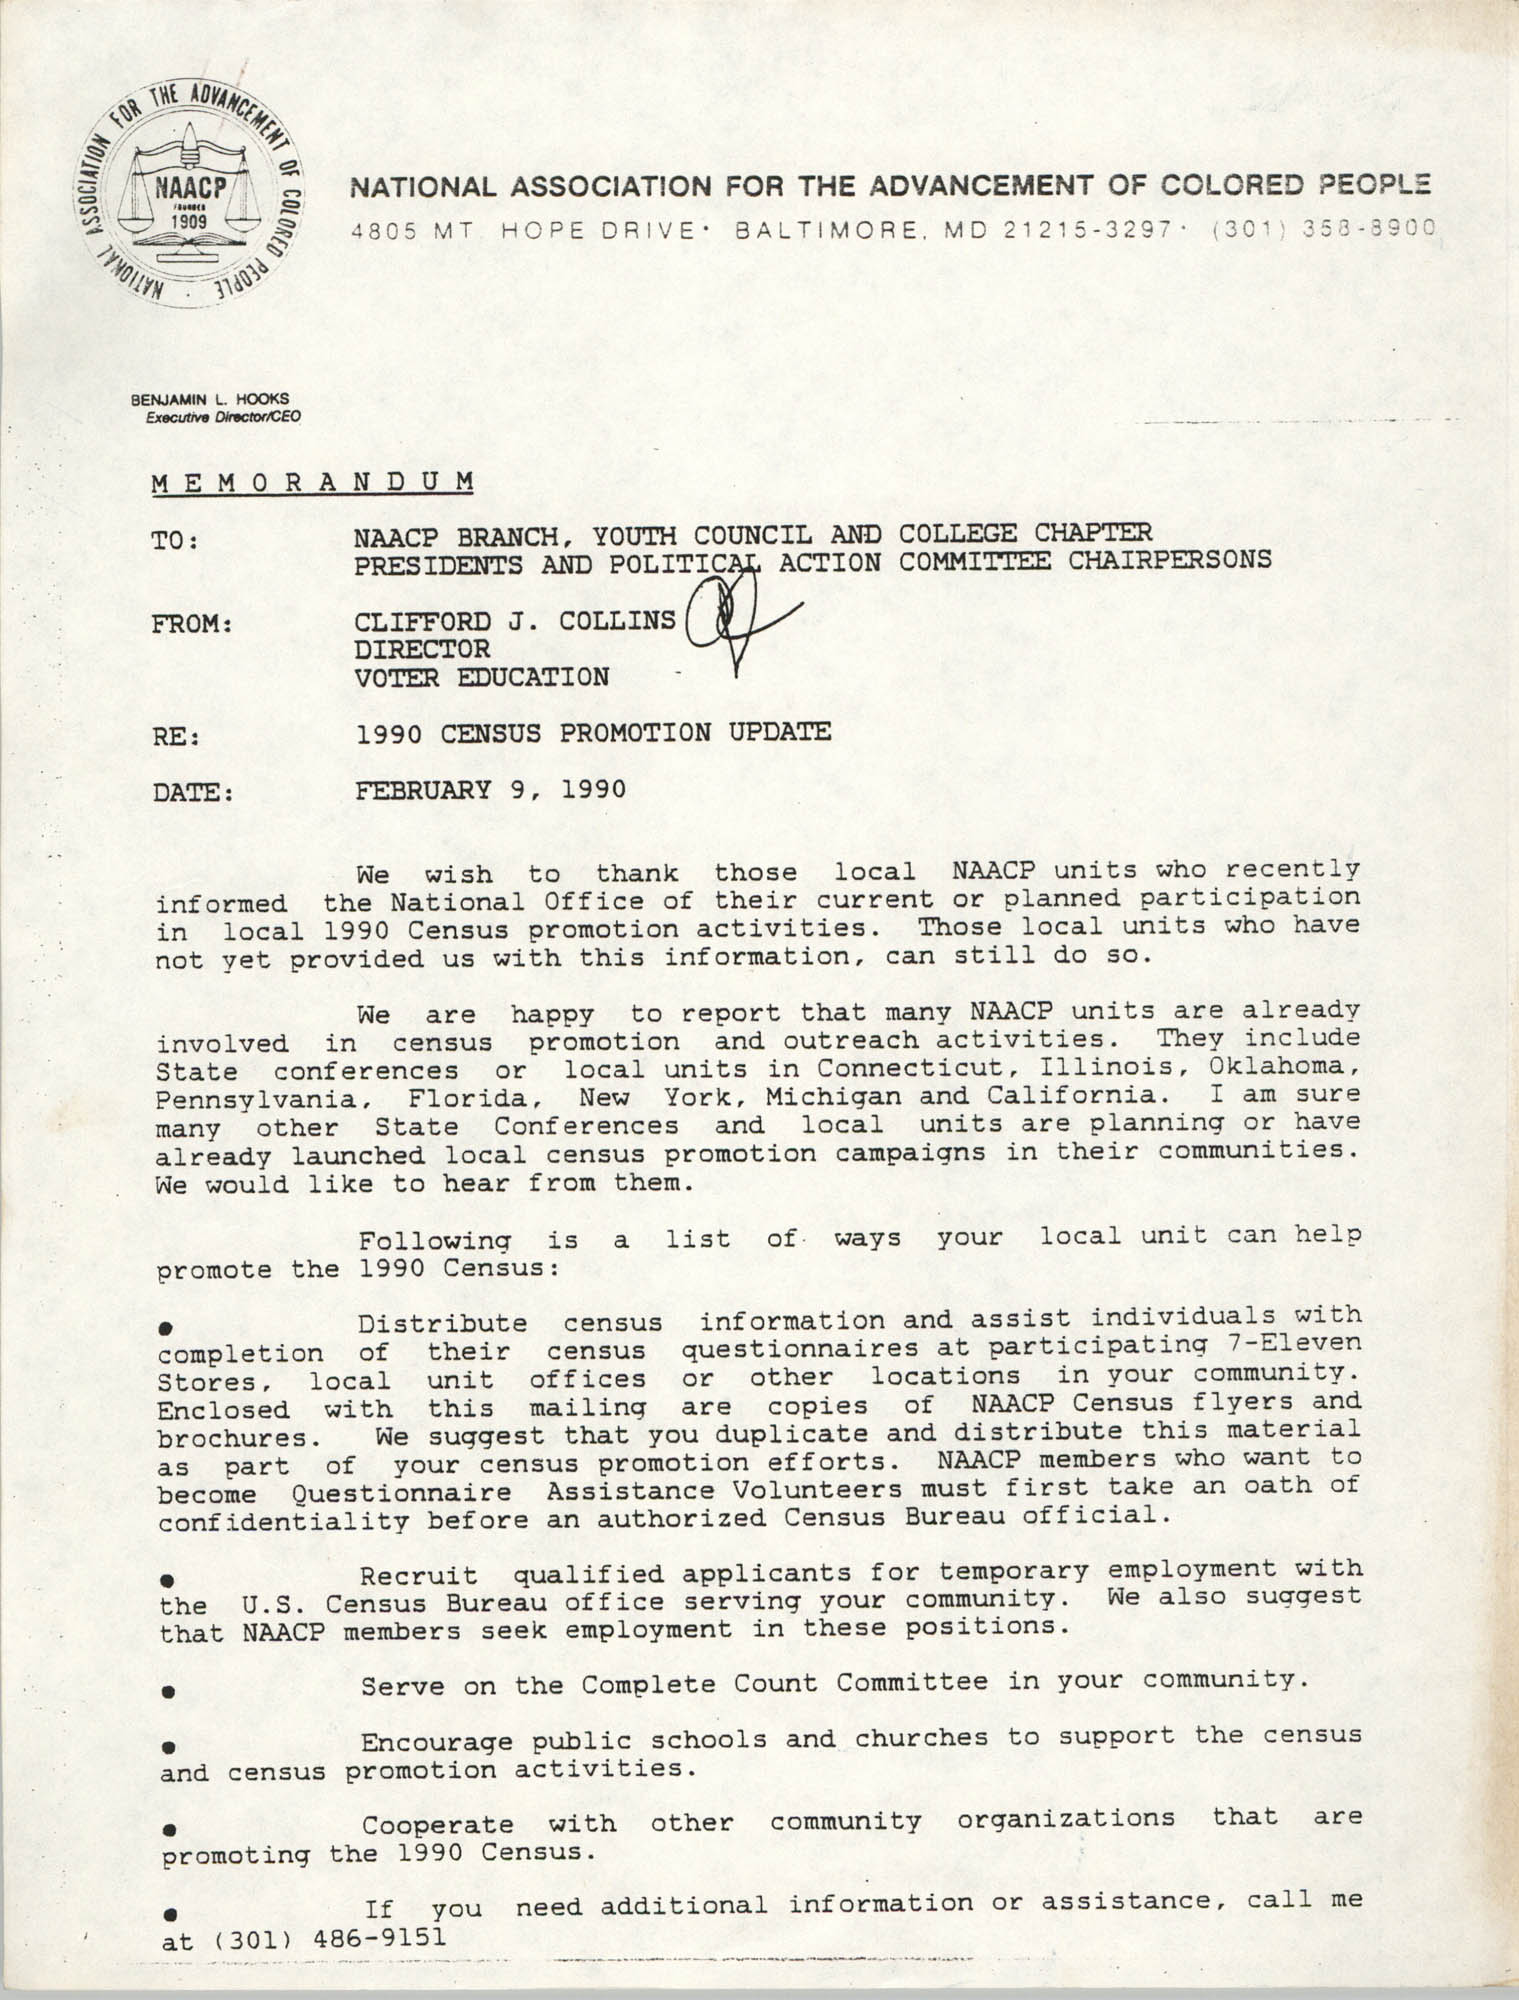 NAACP Memorandum, February 9, 1990